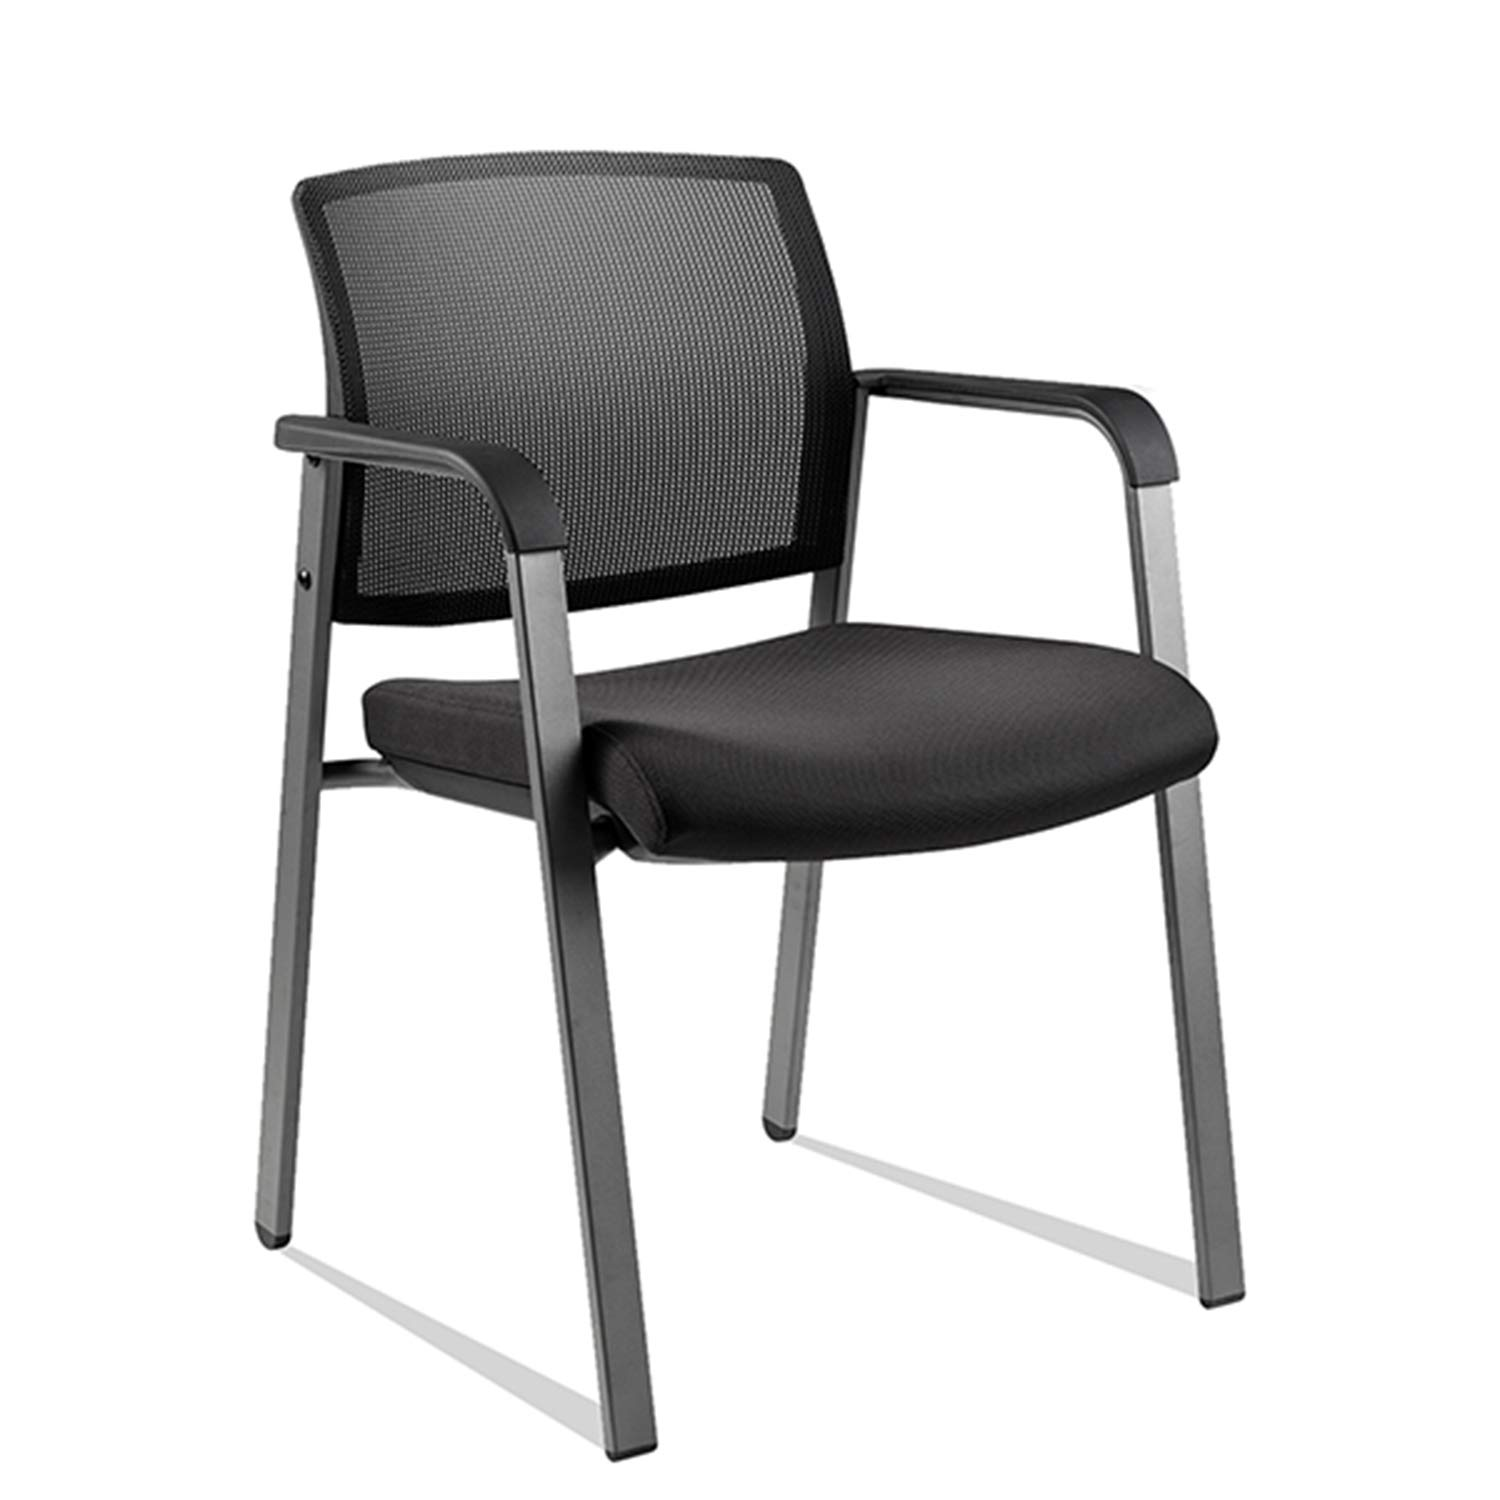 CLATINA Mesh Back Stacking Arm Chairs with Upholstered Fabric Seat and Ergonomic Lumber Support for Office School Church Guest Reception BIFMA Certified Black